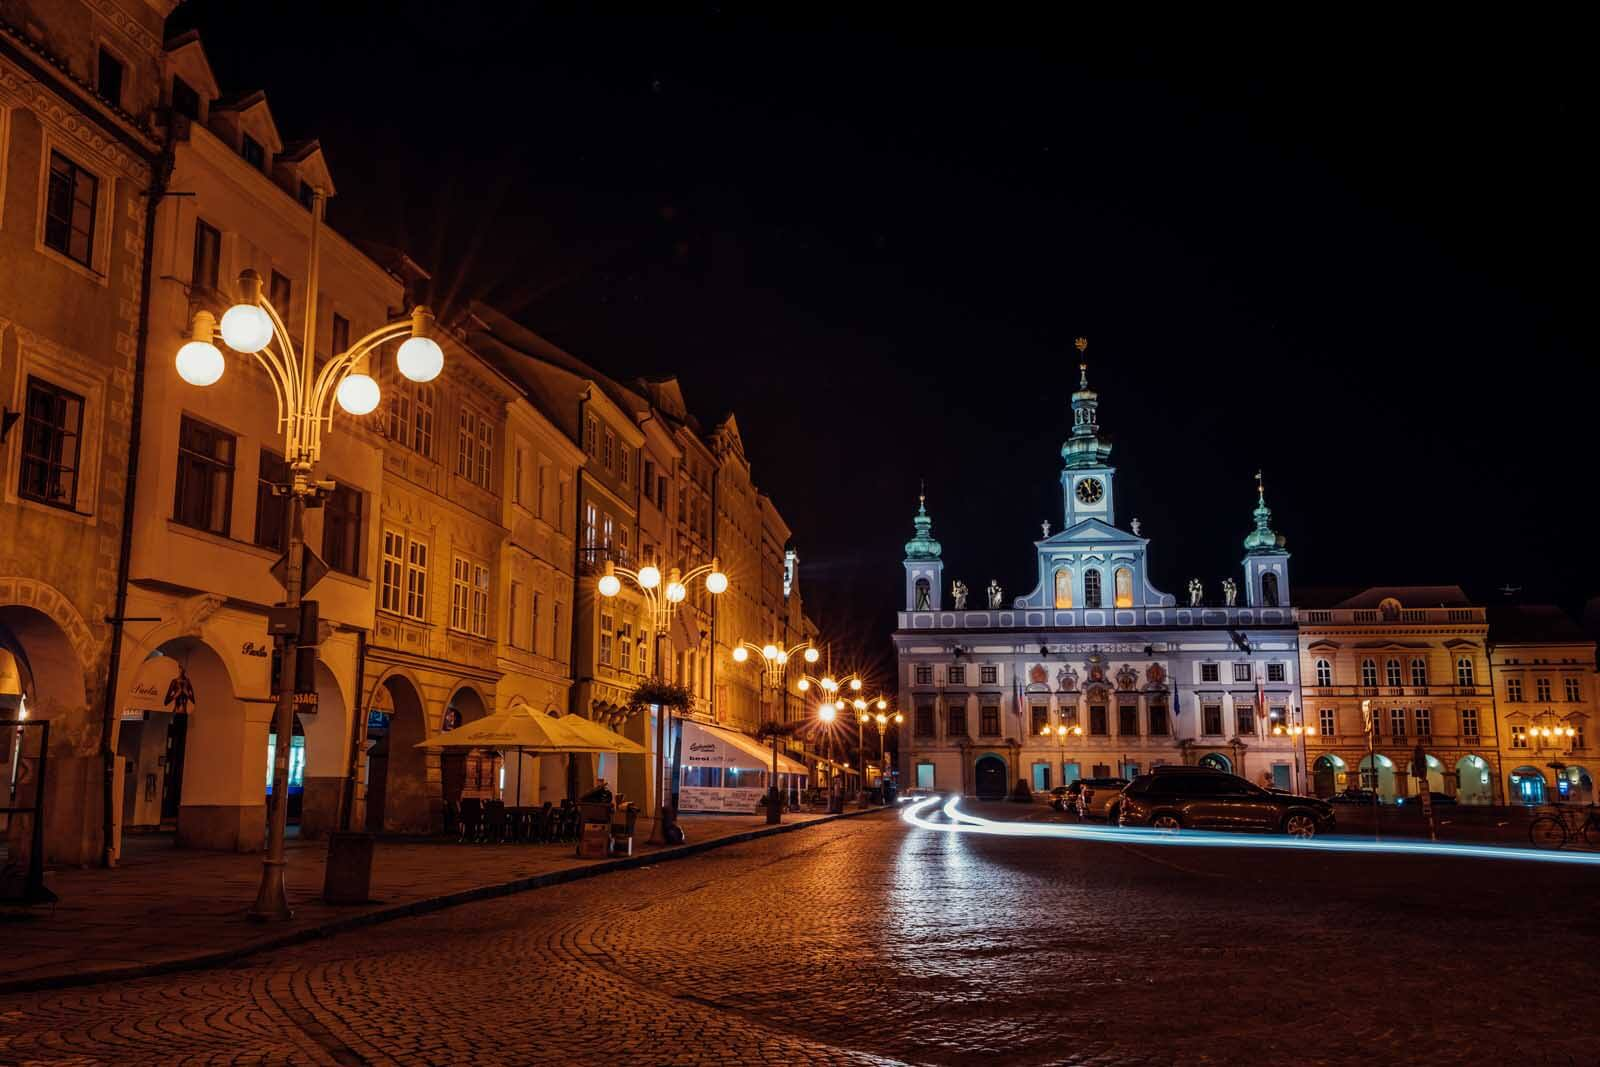 Ceske Budejovice town hall at night in the Czech Republic